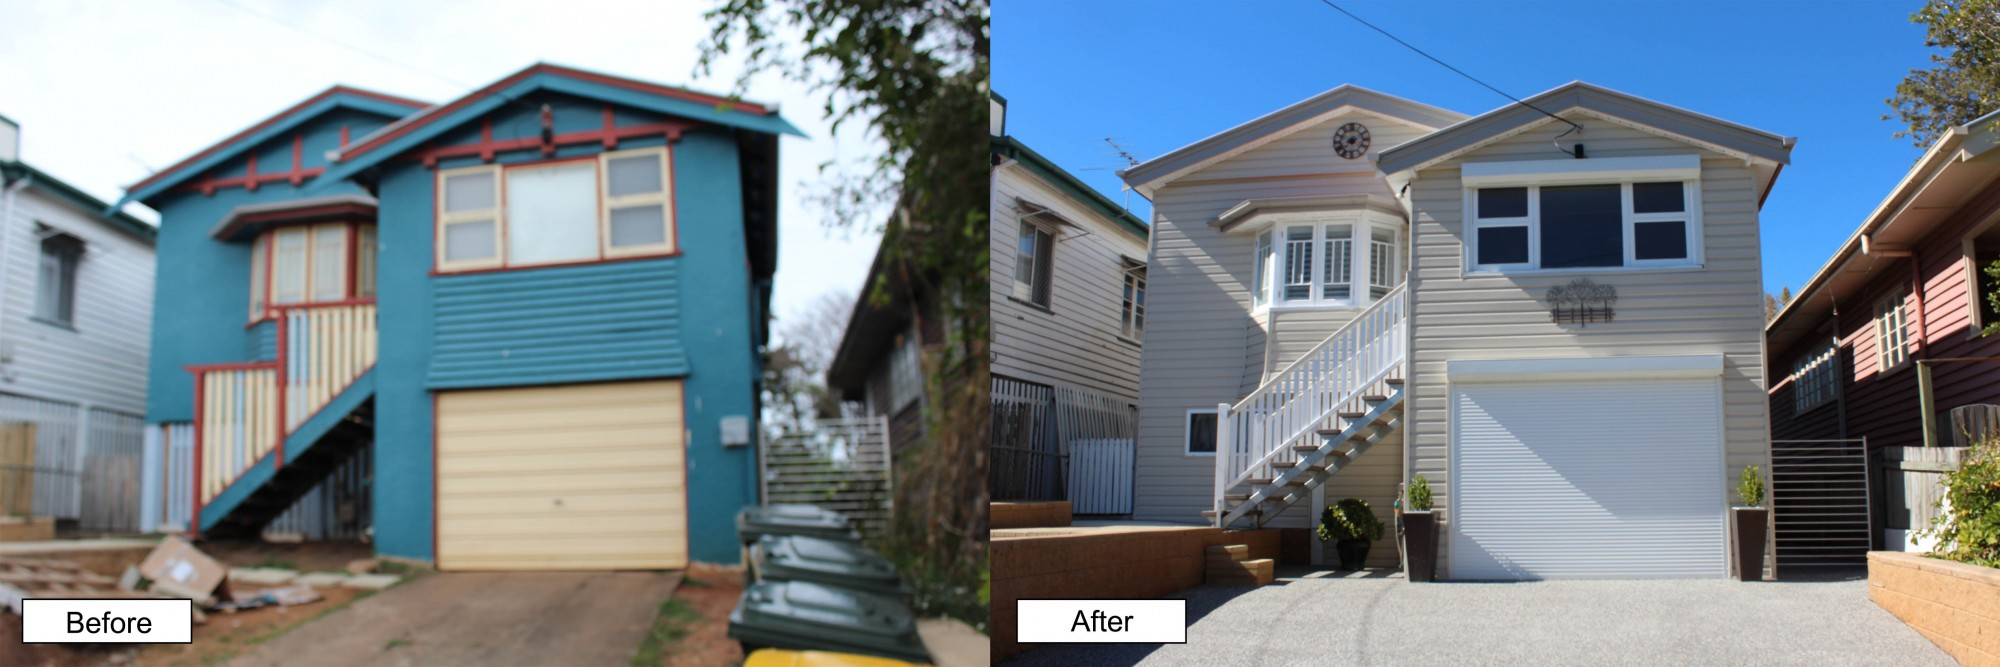 Before and after house cladding in Lismore.